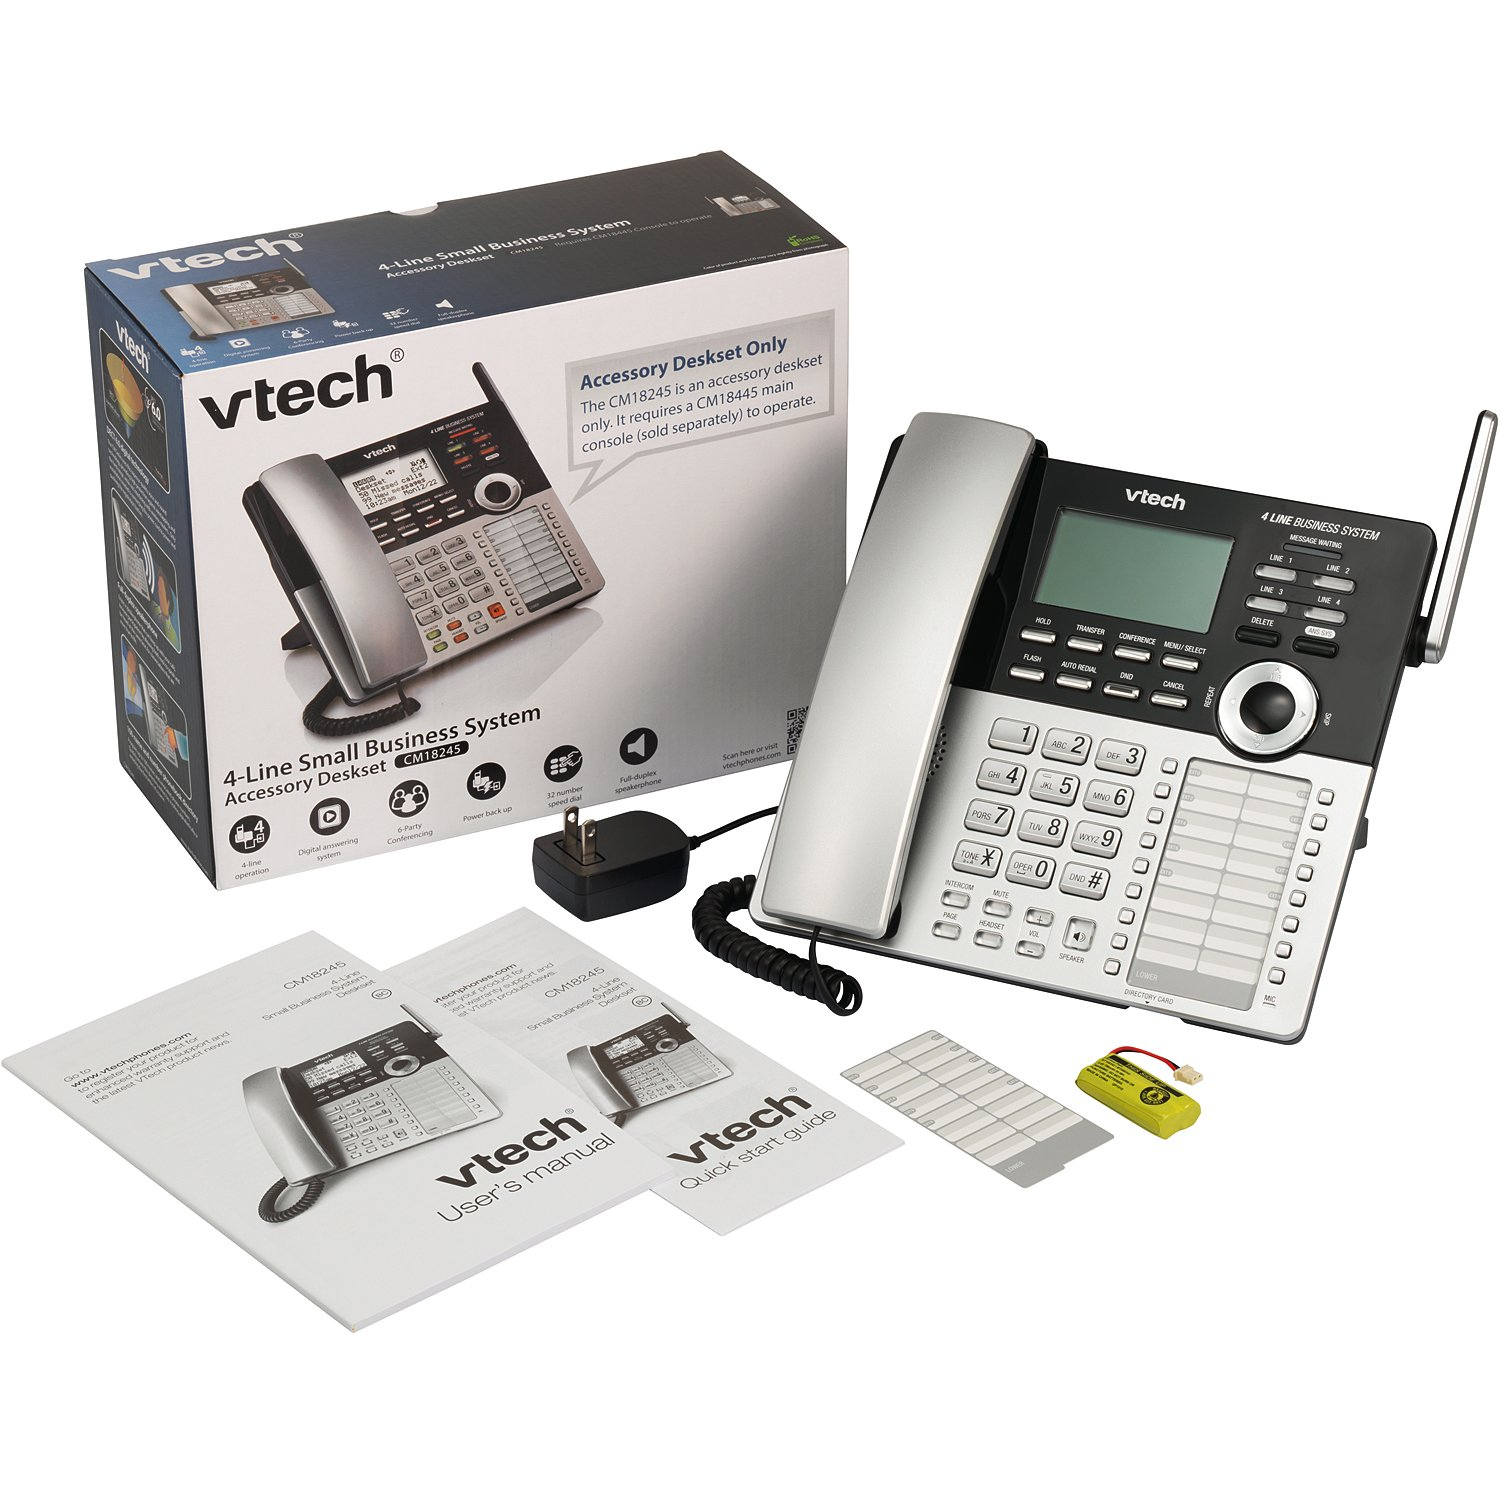 2a01db5e20e VTech 4-Line Small Business Phone System - Office Starter Bundle with 1  CM18445 Main